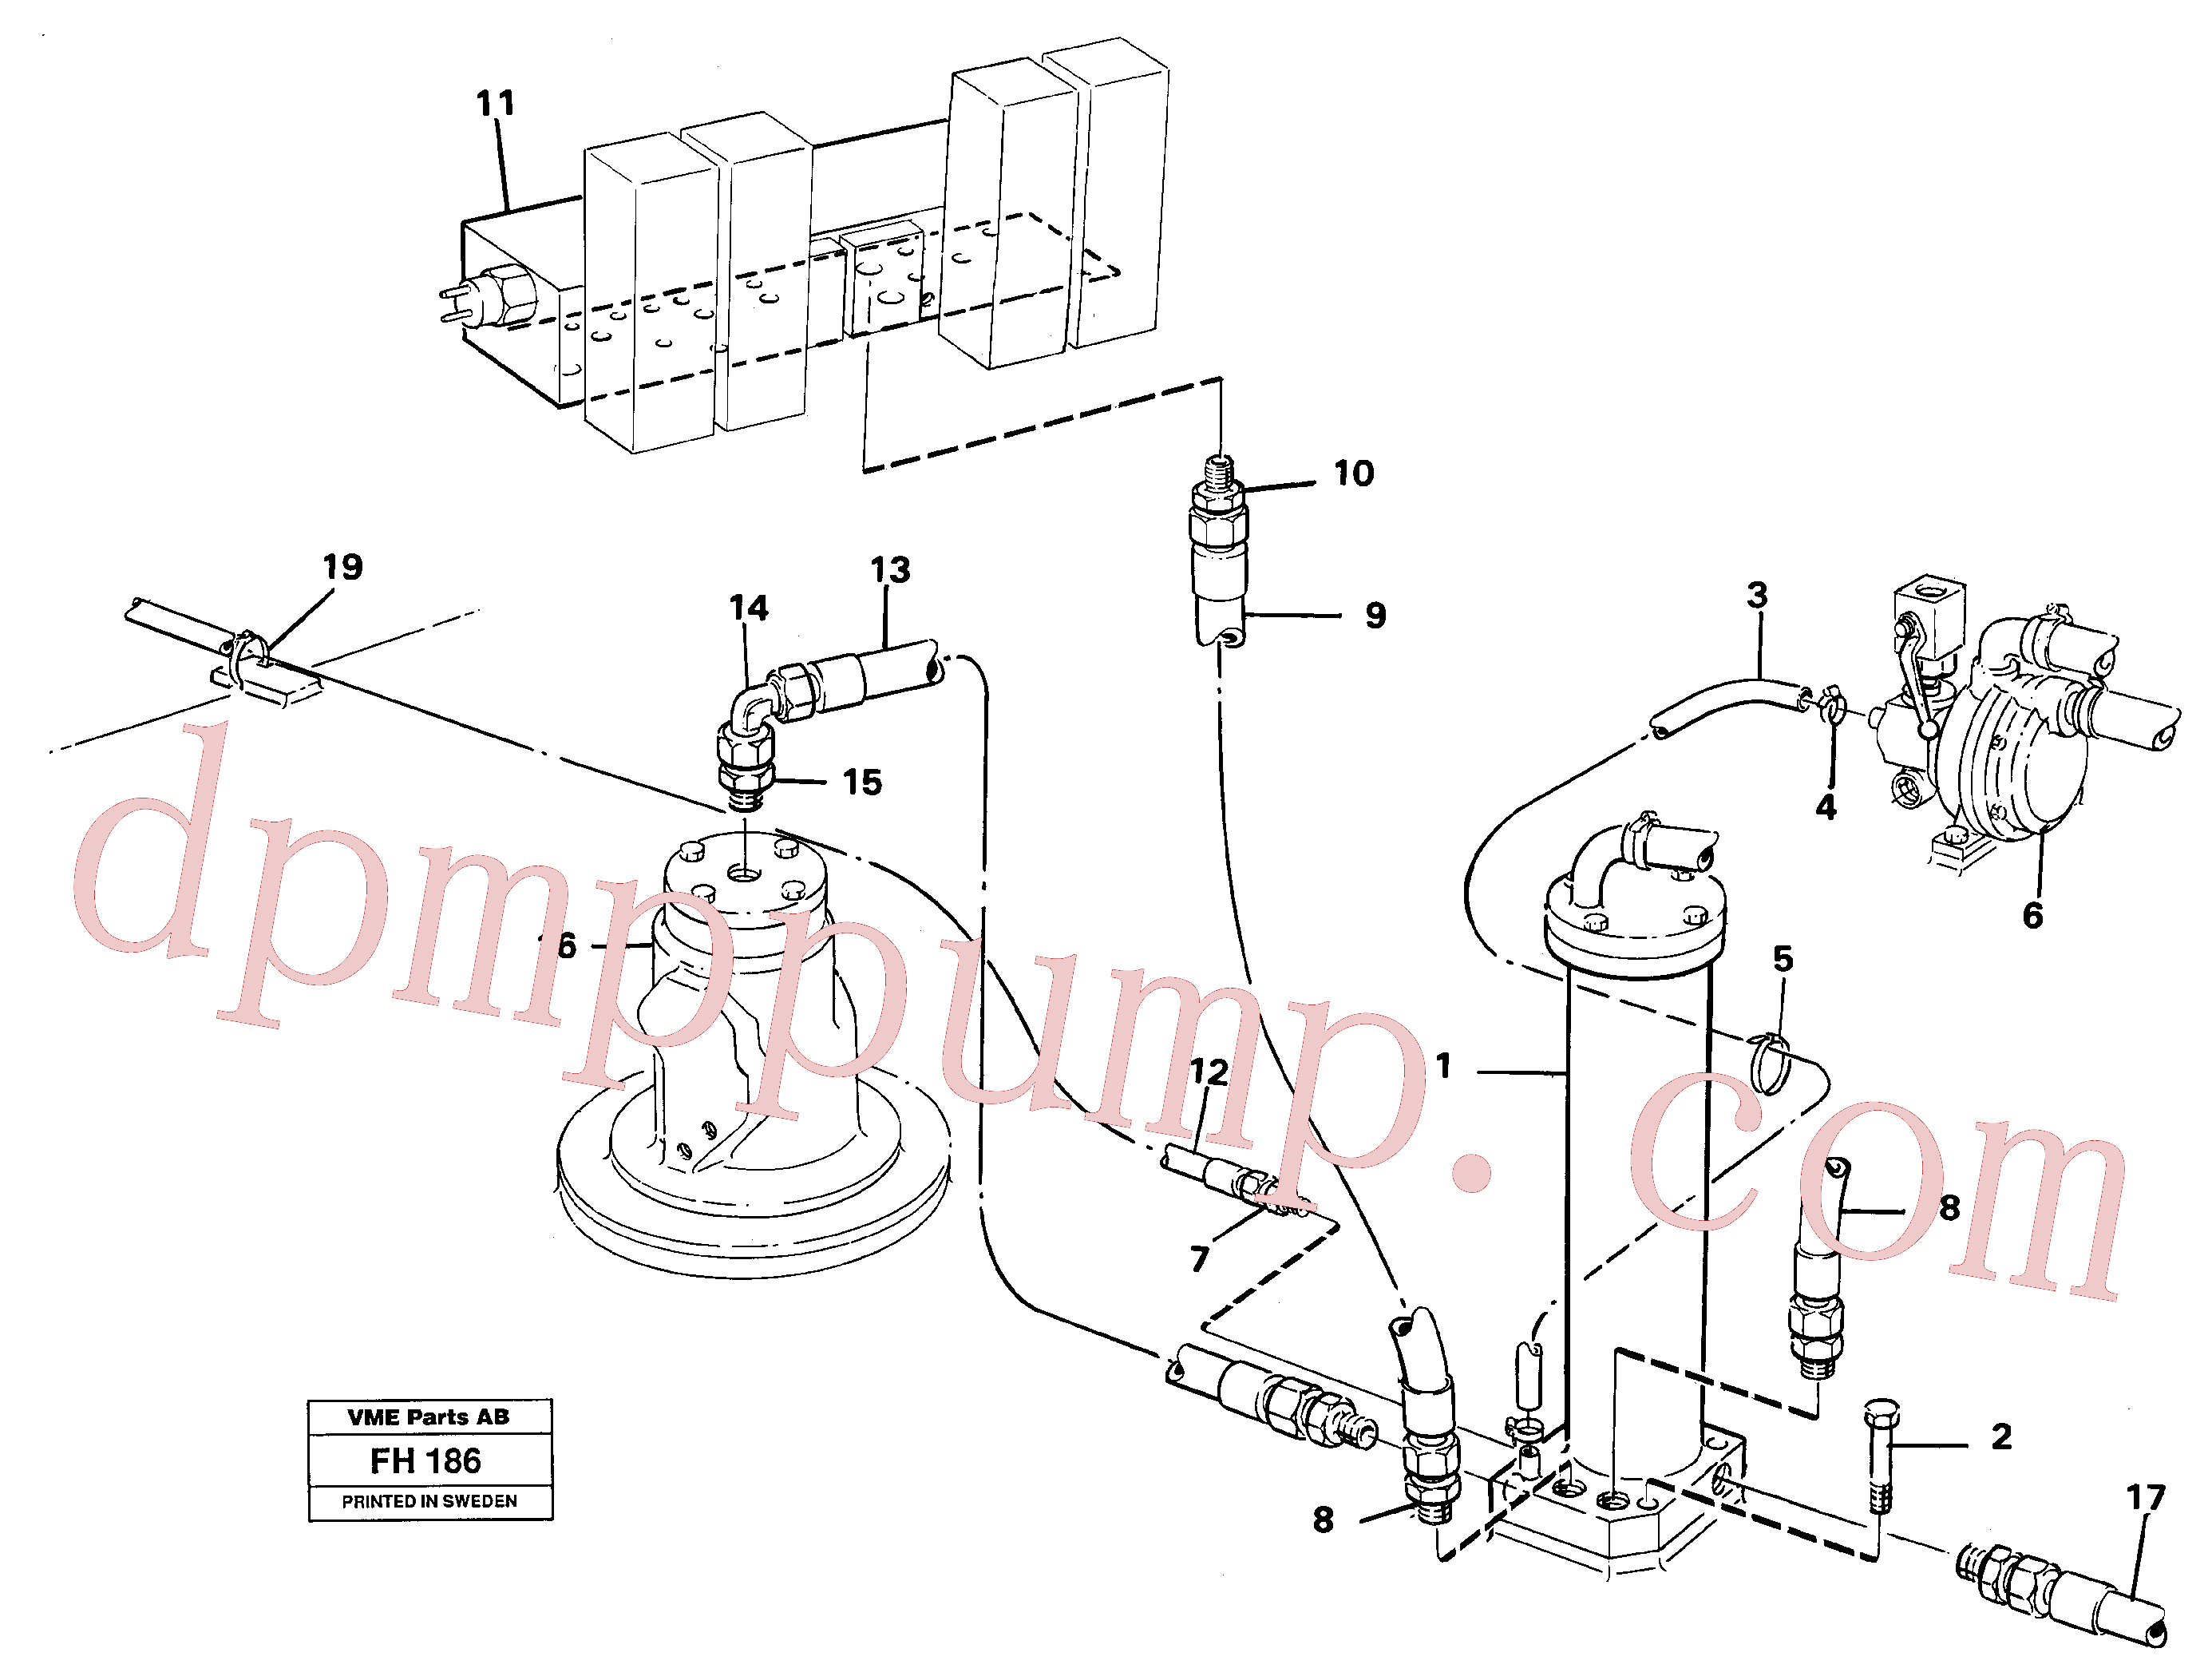 VOE14040485 for Volvo Leak oil filter, with connections(FH186 assembly)